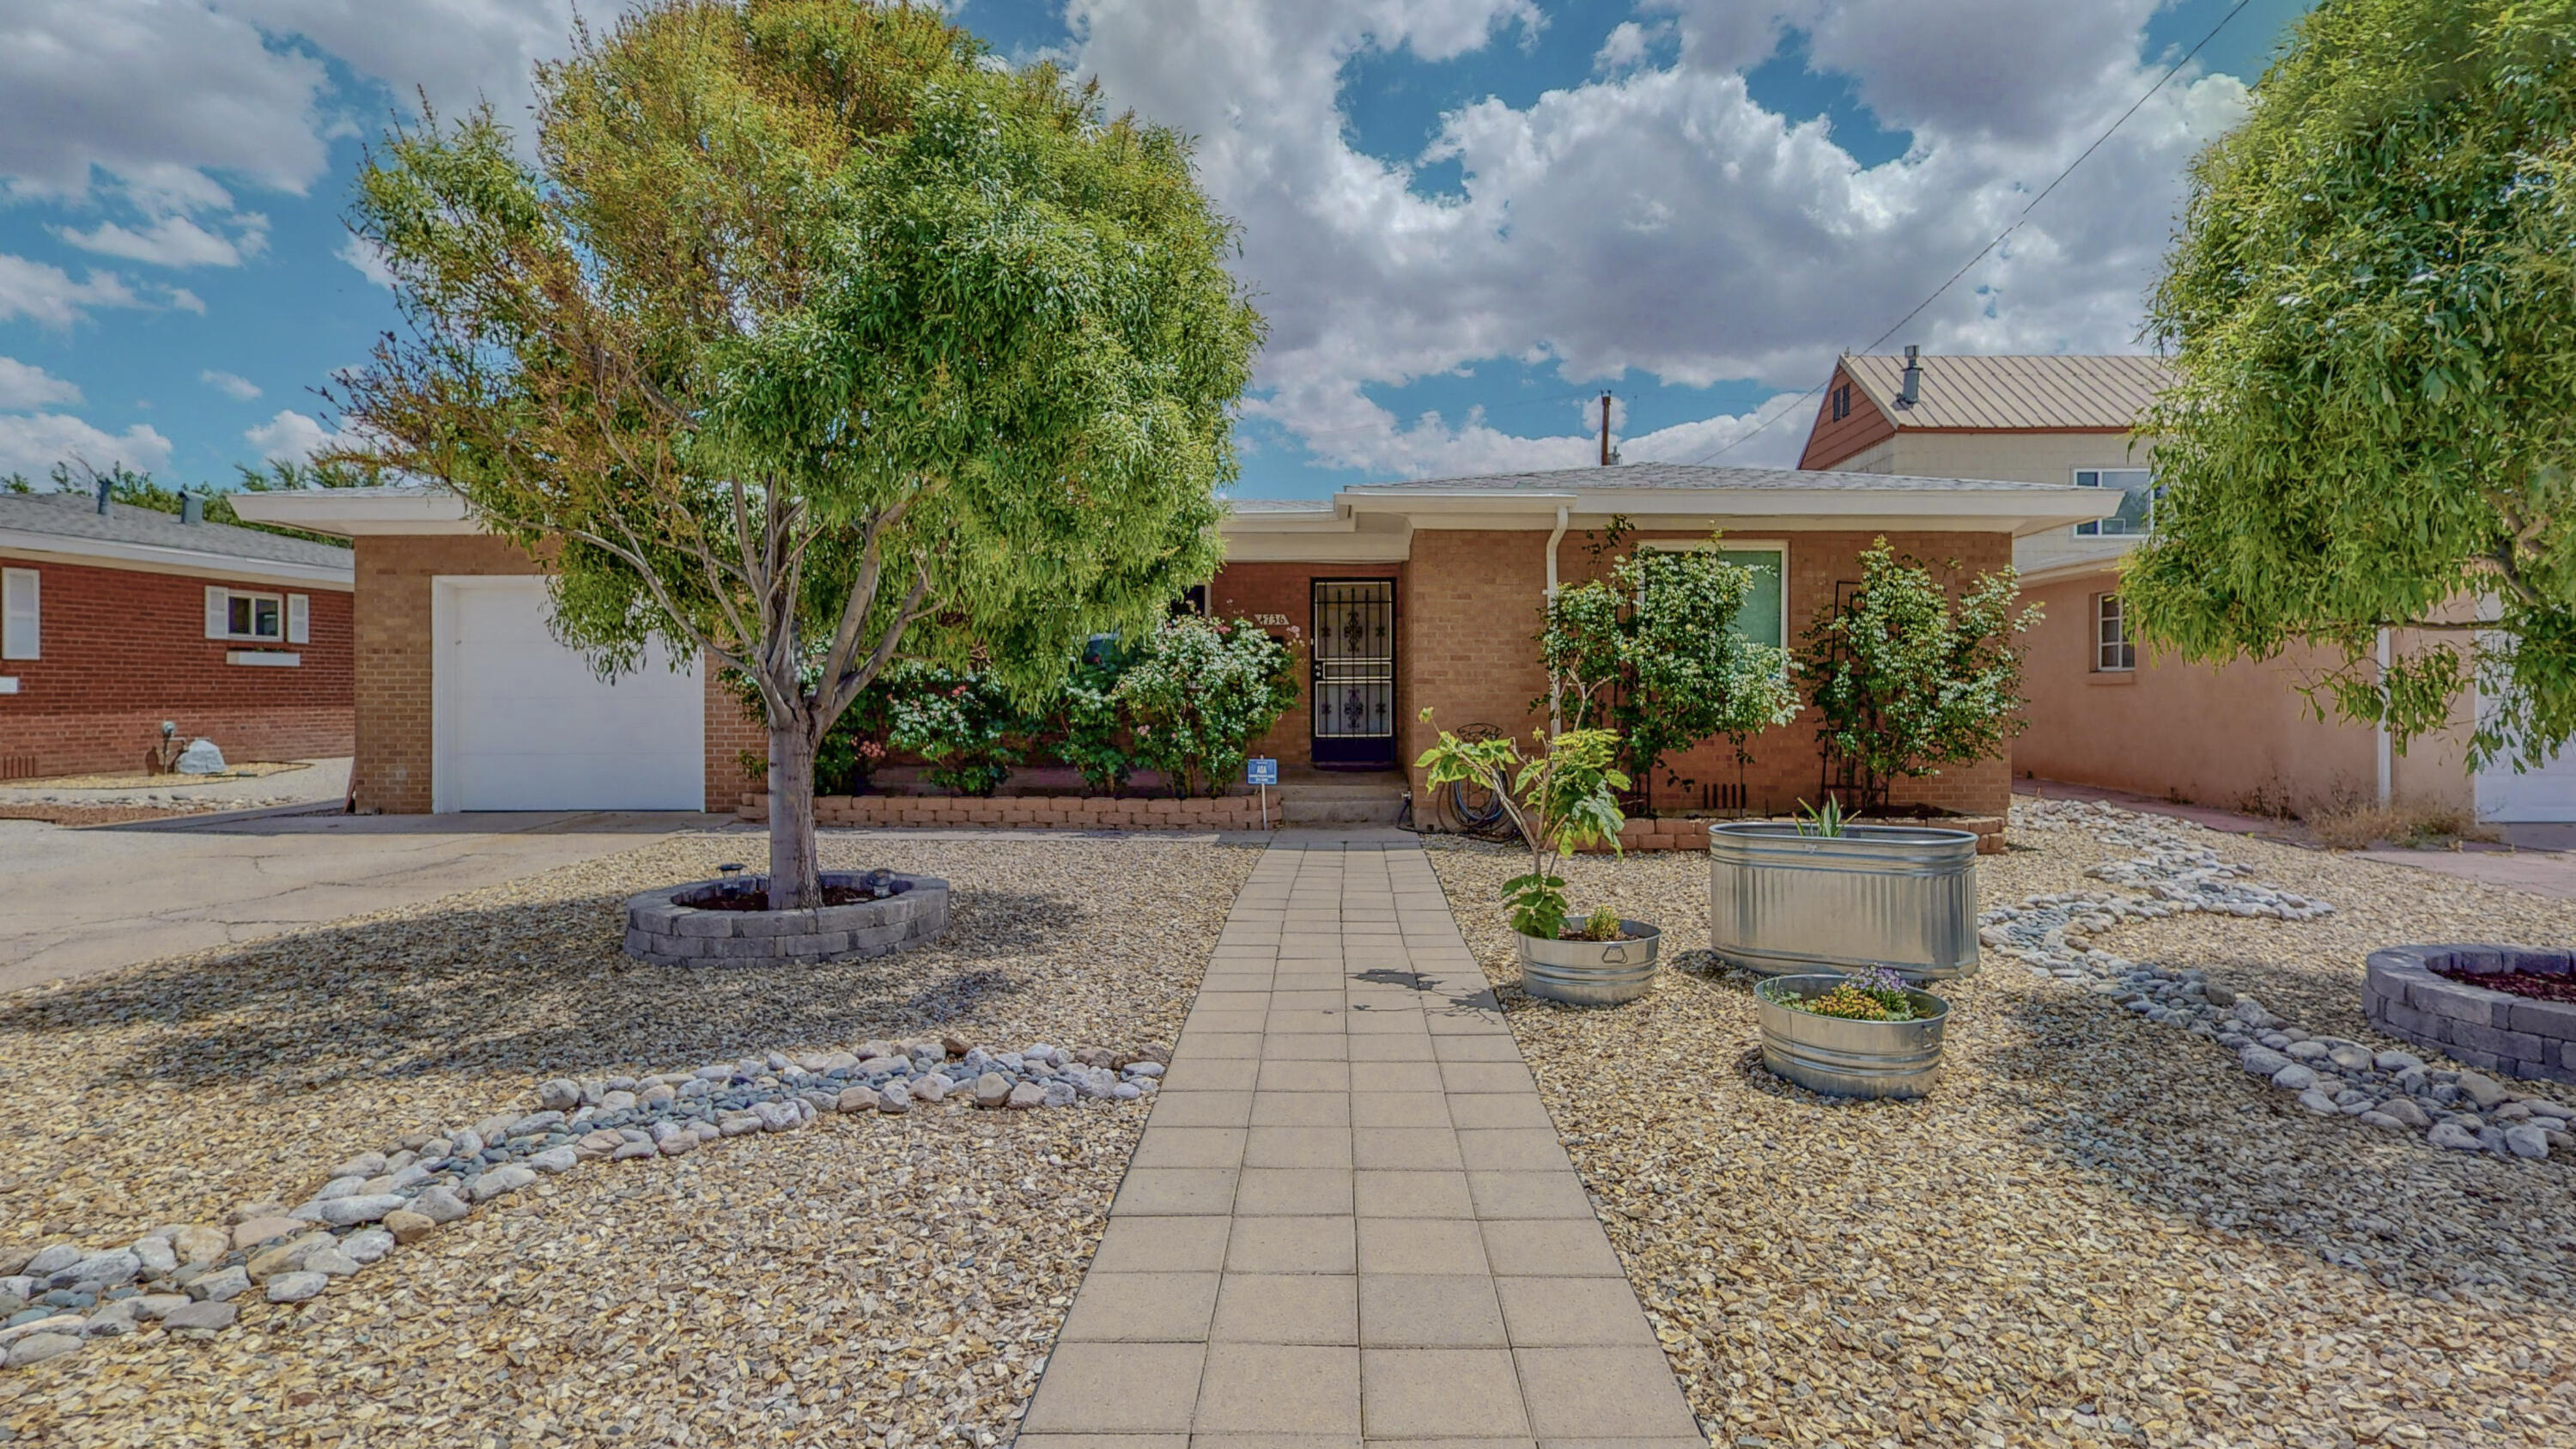 It is like a new home but gorgeous hard wood flooring and coved ceiling details.  Living room with cozy wood burning fire place, built in book shelves.  Renovated 2015 with refrigerated AC, new plumbing and elec., and new windows.  New roof in 2019 with energy star rated shingles.  Kitchen w/stainless steel appliances including gas double oven are from 2015 and new contemporary tile flooring.Buyers will appreciate the easy maintenance front yard and back yard with grass area, fire pit and trees:  two pomegranates, a brown fig and a pineapple quince tree.Location says it all for proximity to Nob Hill, hospitals, UNM, KAFB and Sandia Labs.